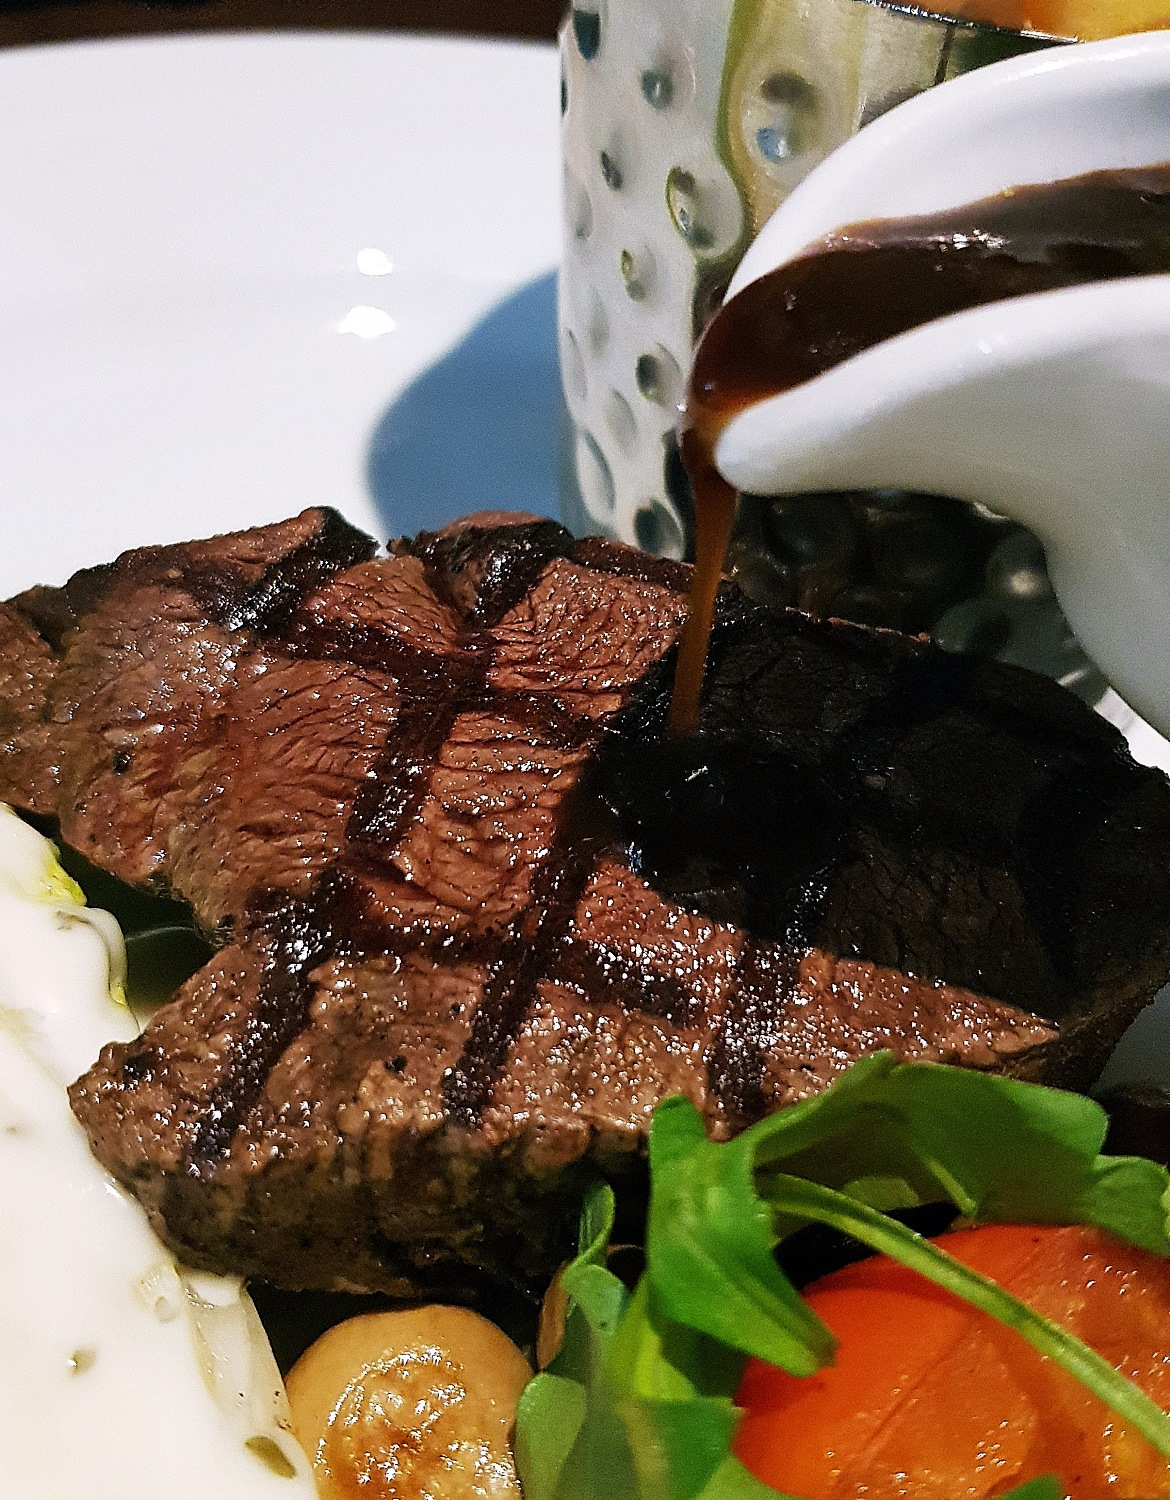 Fillet steak with red wine sauce - Grosvenor Casino Leeds review by BeckyBecky Blogs